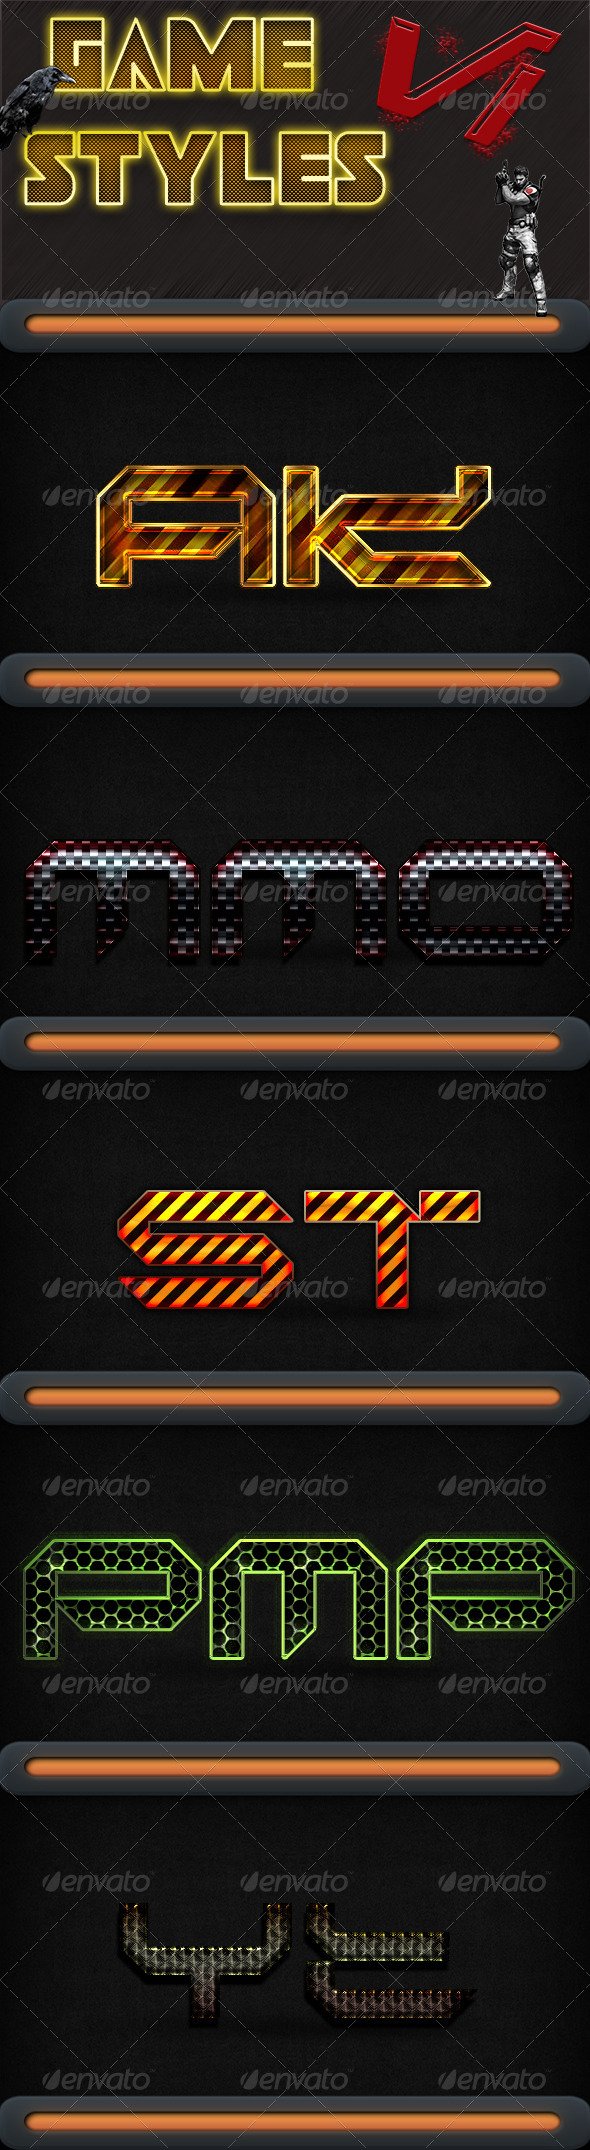 GraphicRiver Game Styles V1 5612441